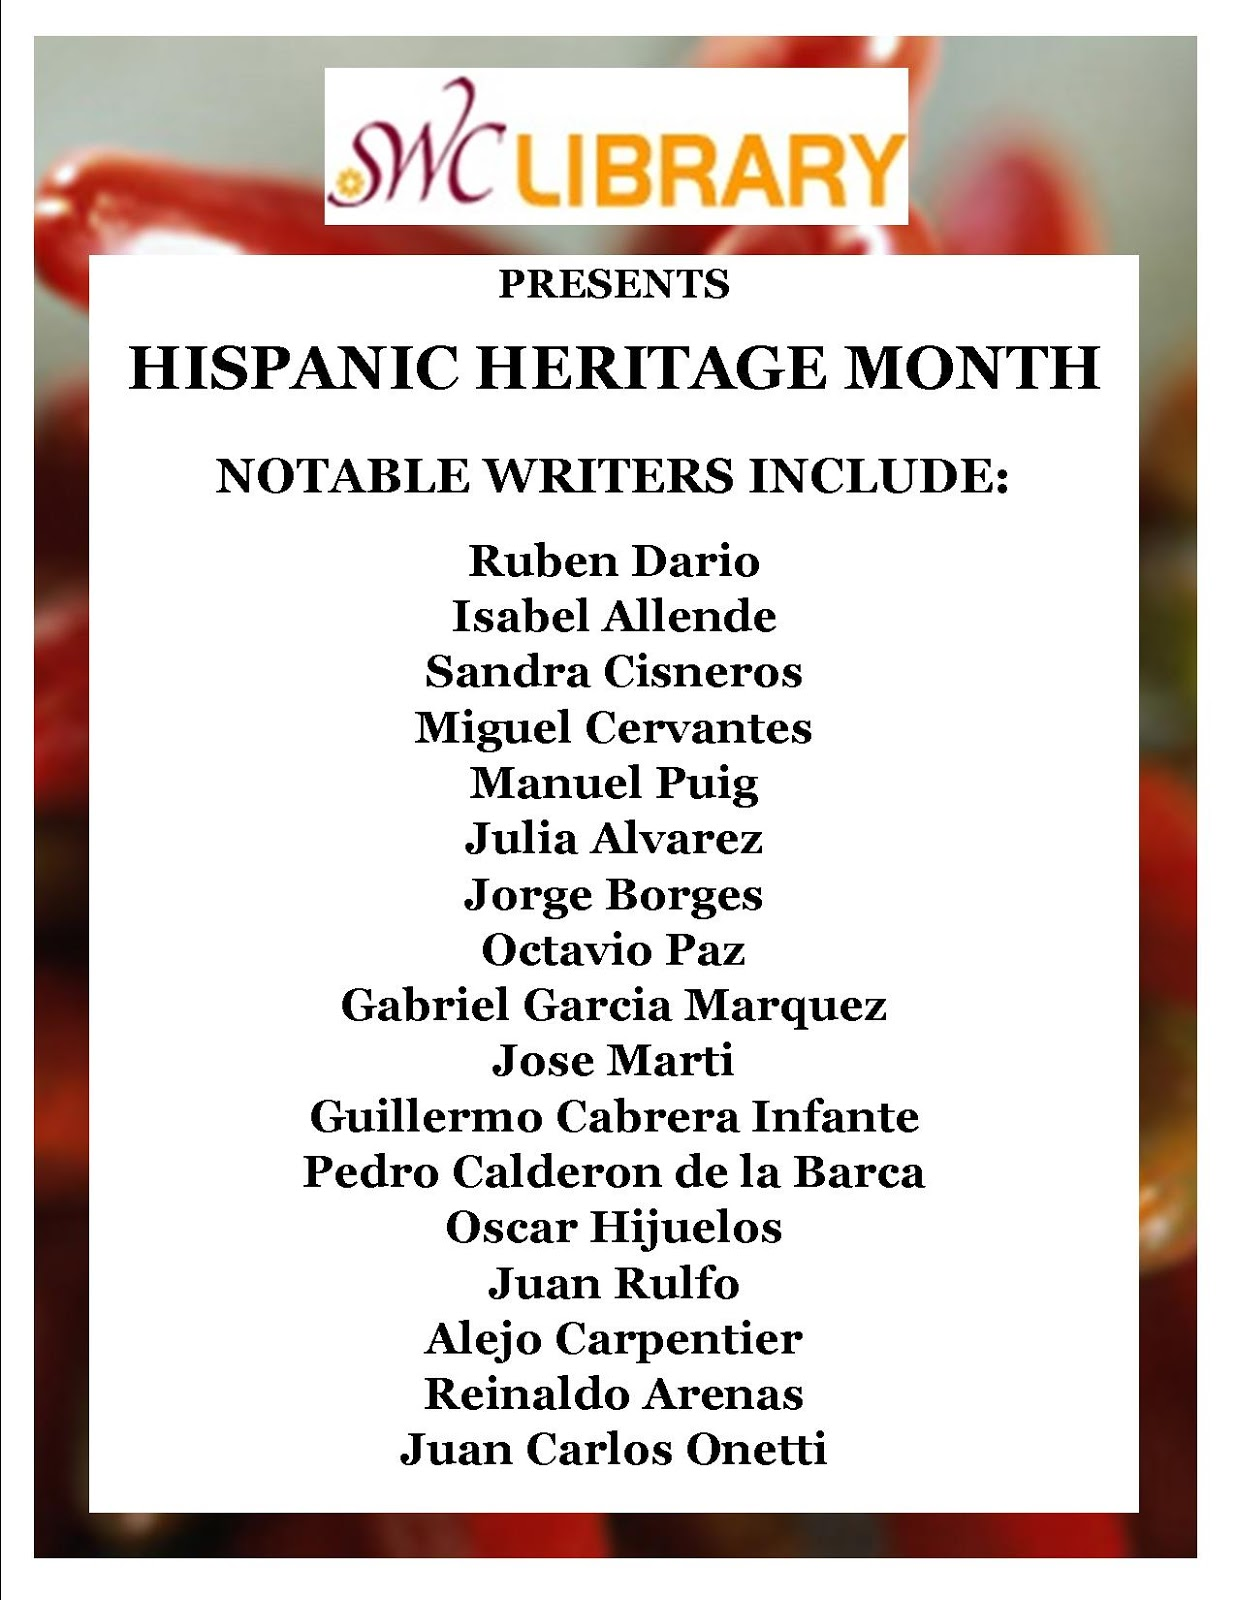 What S New Swc Library Hispanic Heritage Month